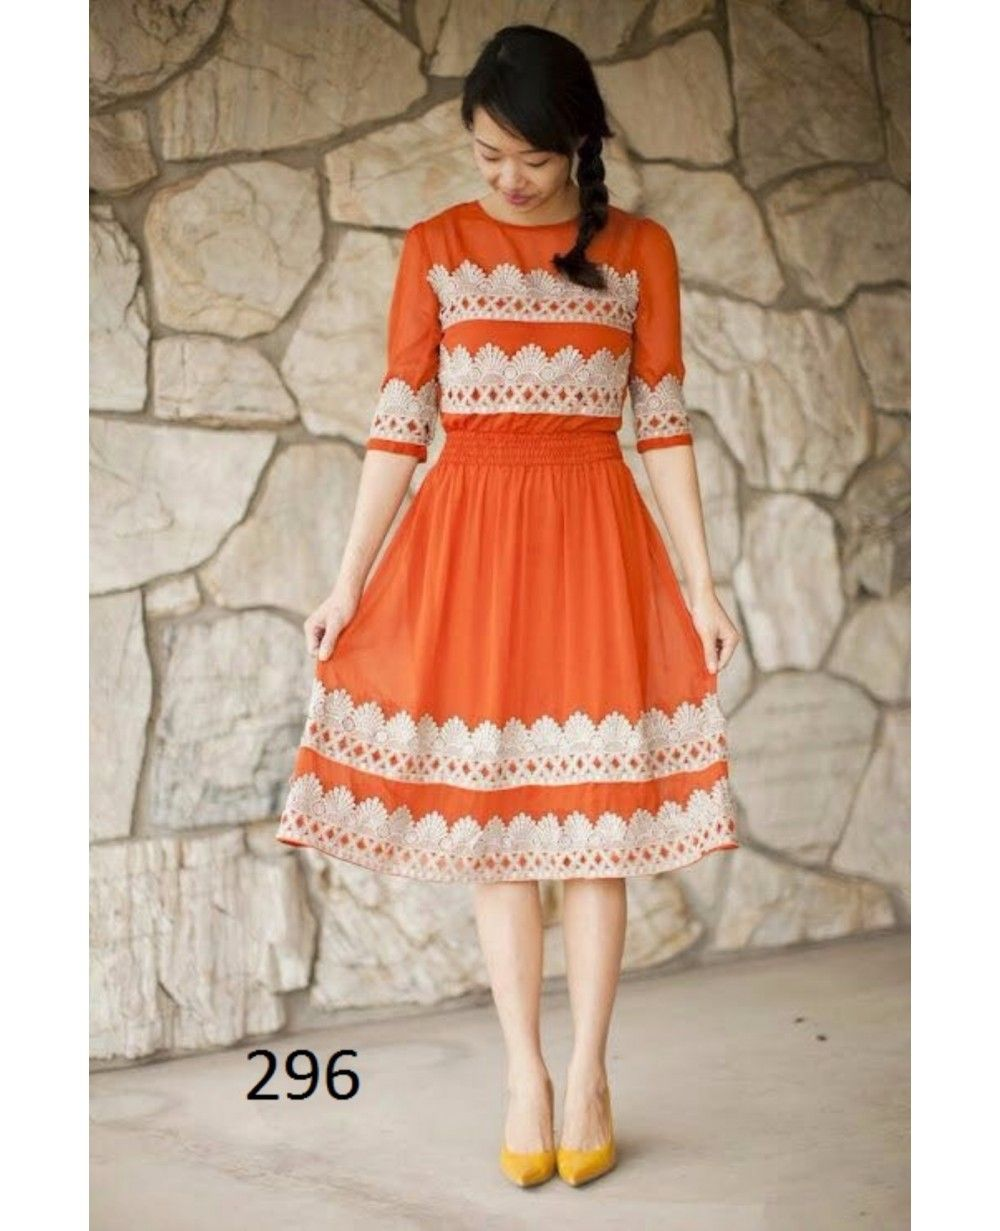 9c00aeabdac5 Buy Fency Orange Color Georgette Half Sleeves Knee Length Semi Stitched  Casual Wear Kurti Online - Kurtis   Kurtas - Ethnic Wear - Indian Wear